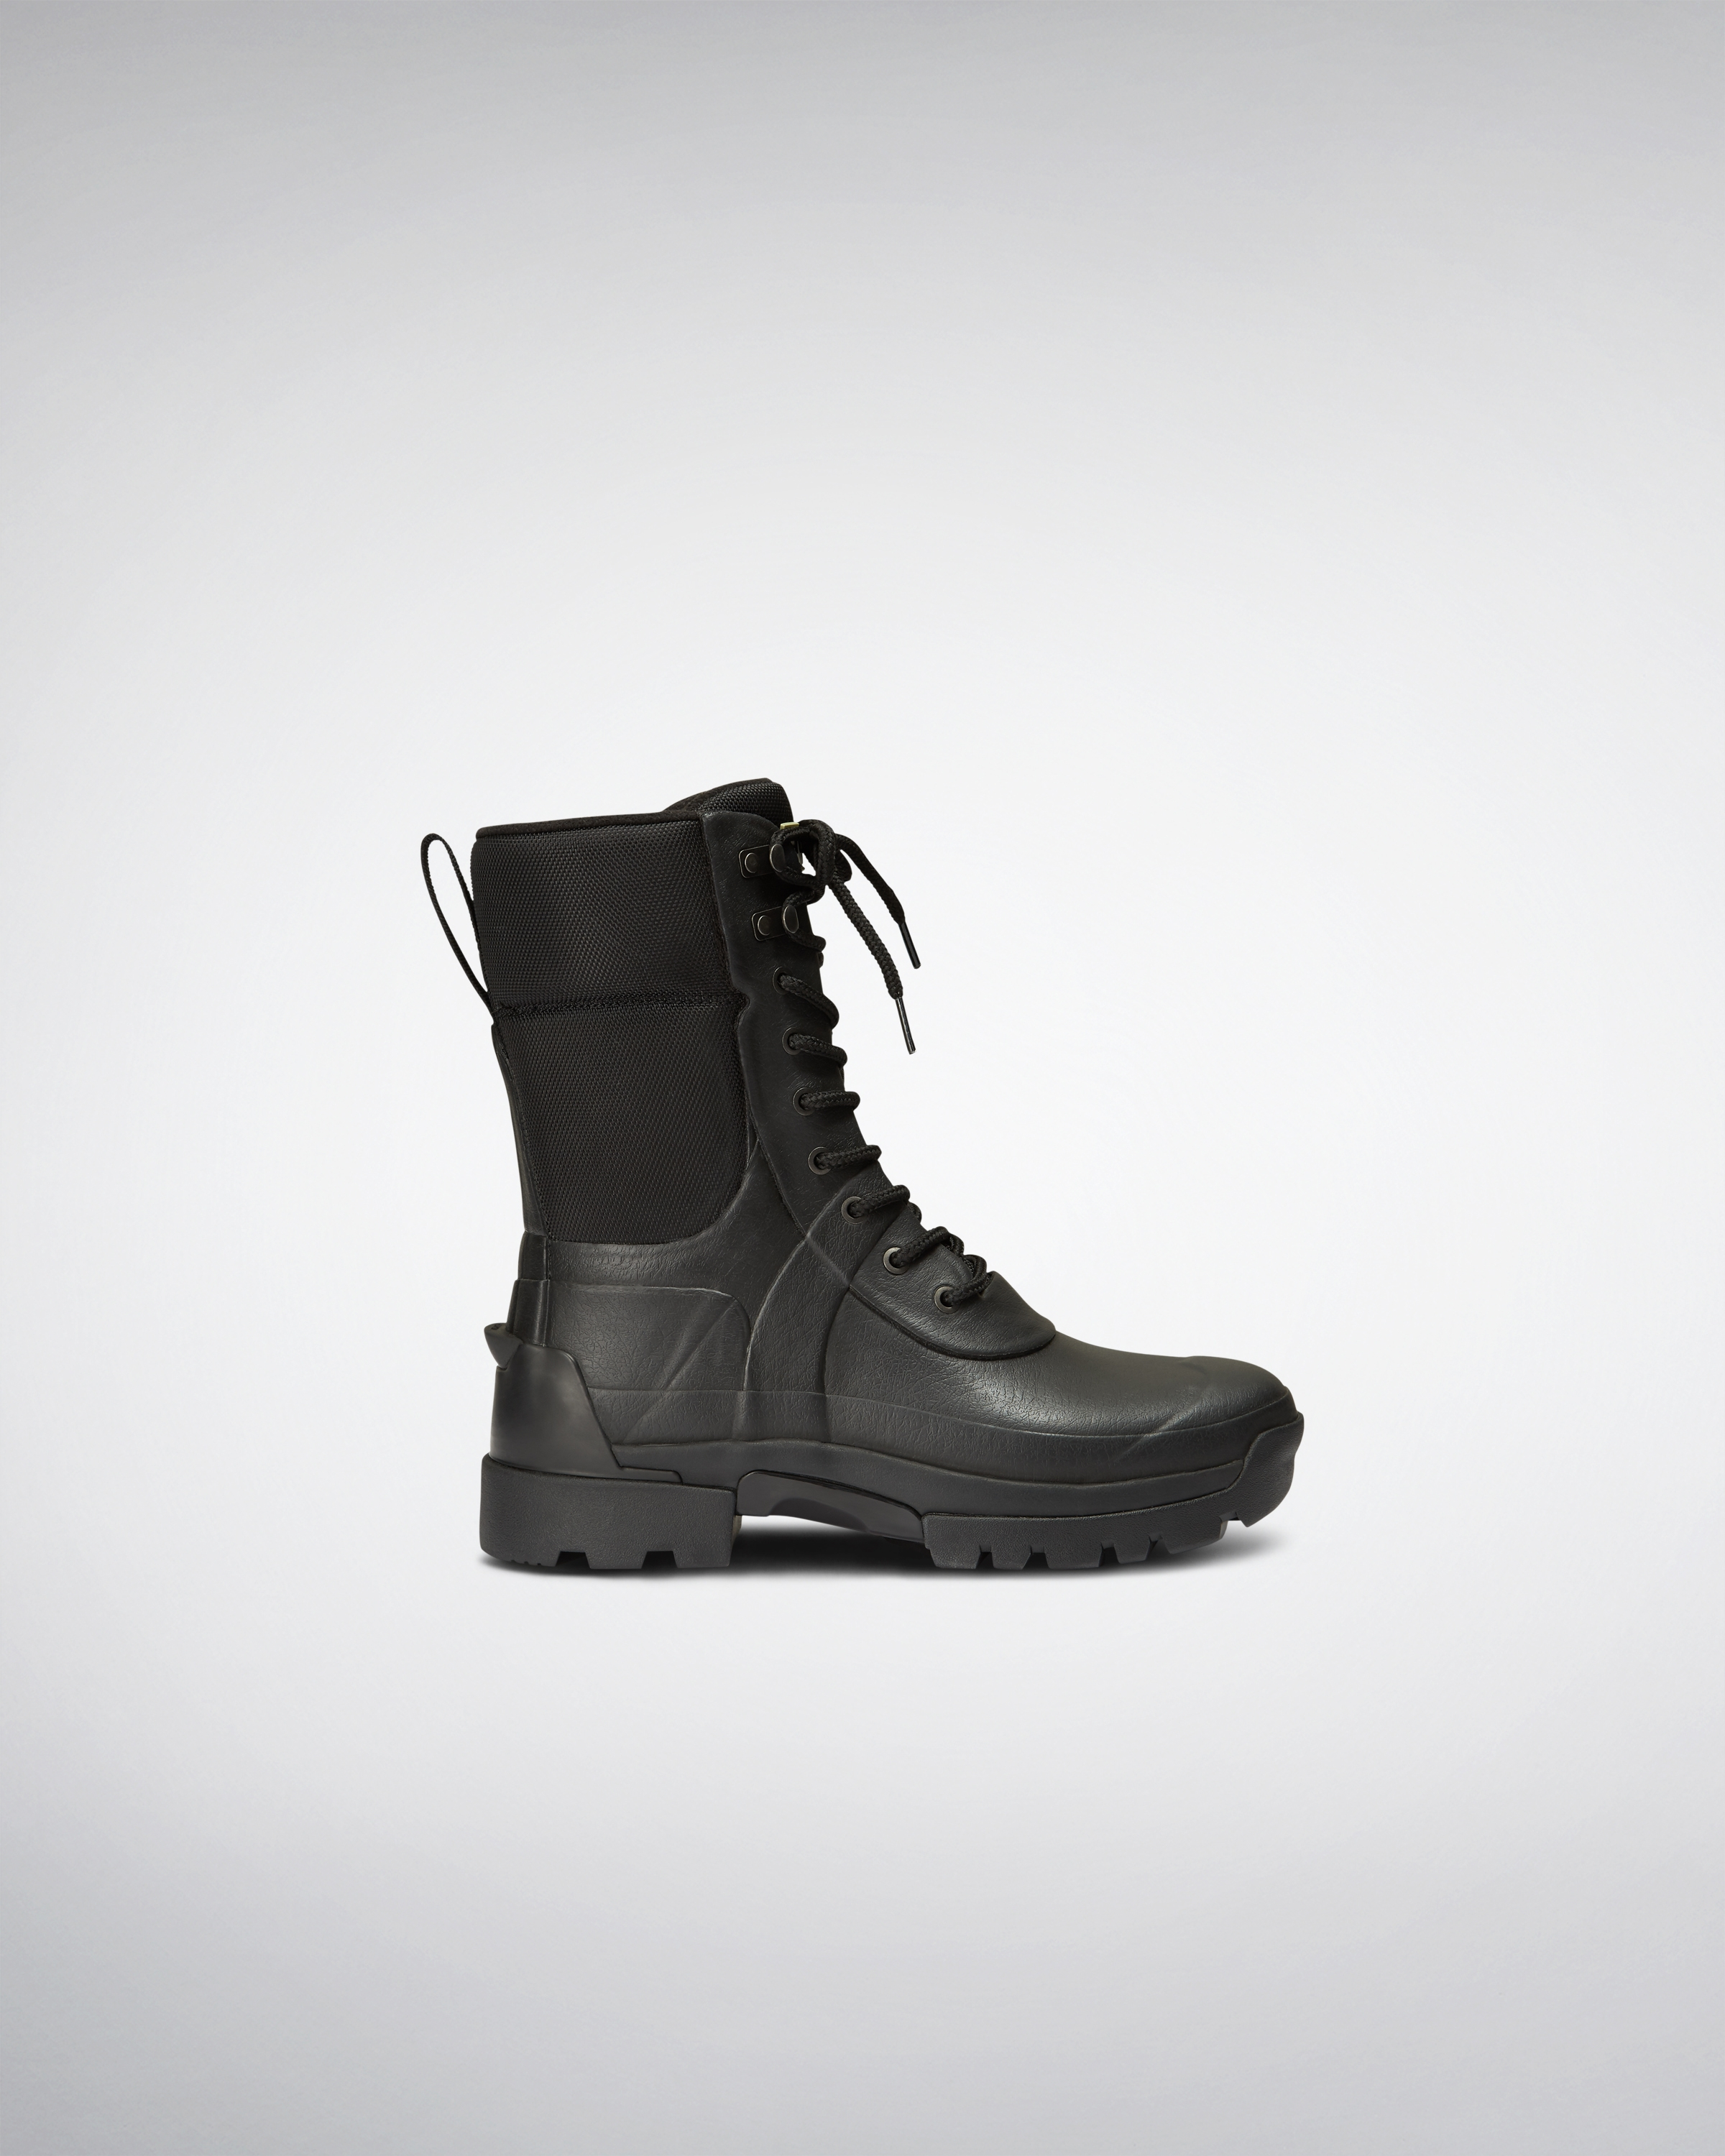 6c26401eb56d54 Mens Black Balmoral Combat Boot | Official Hunter Boots Site